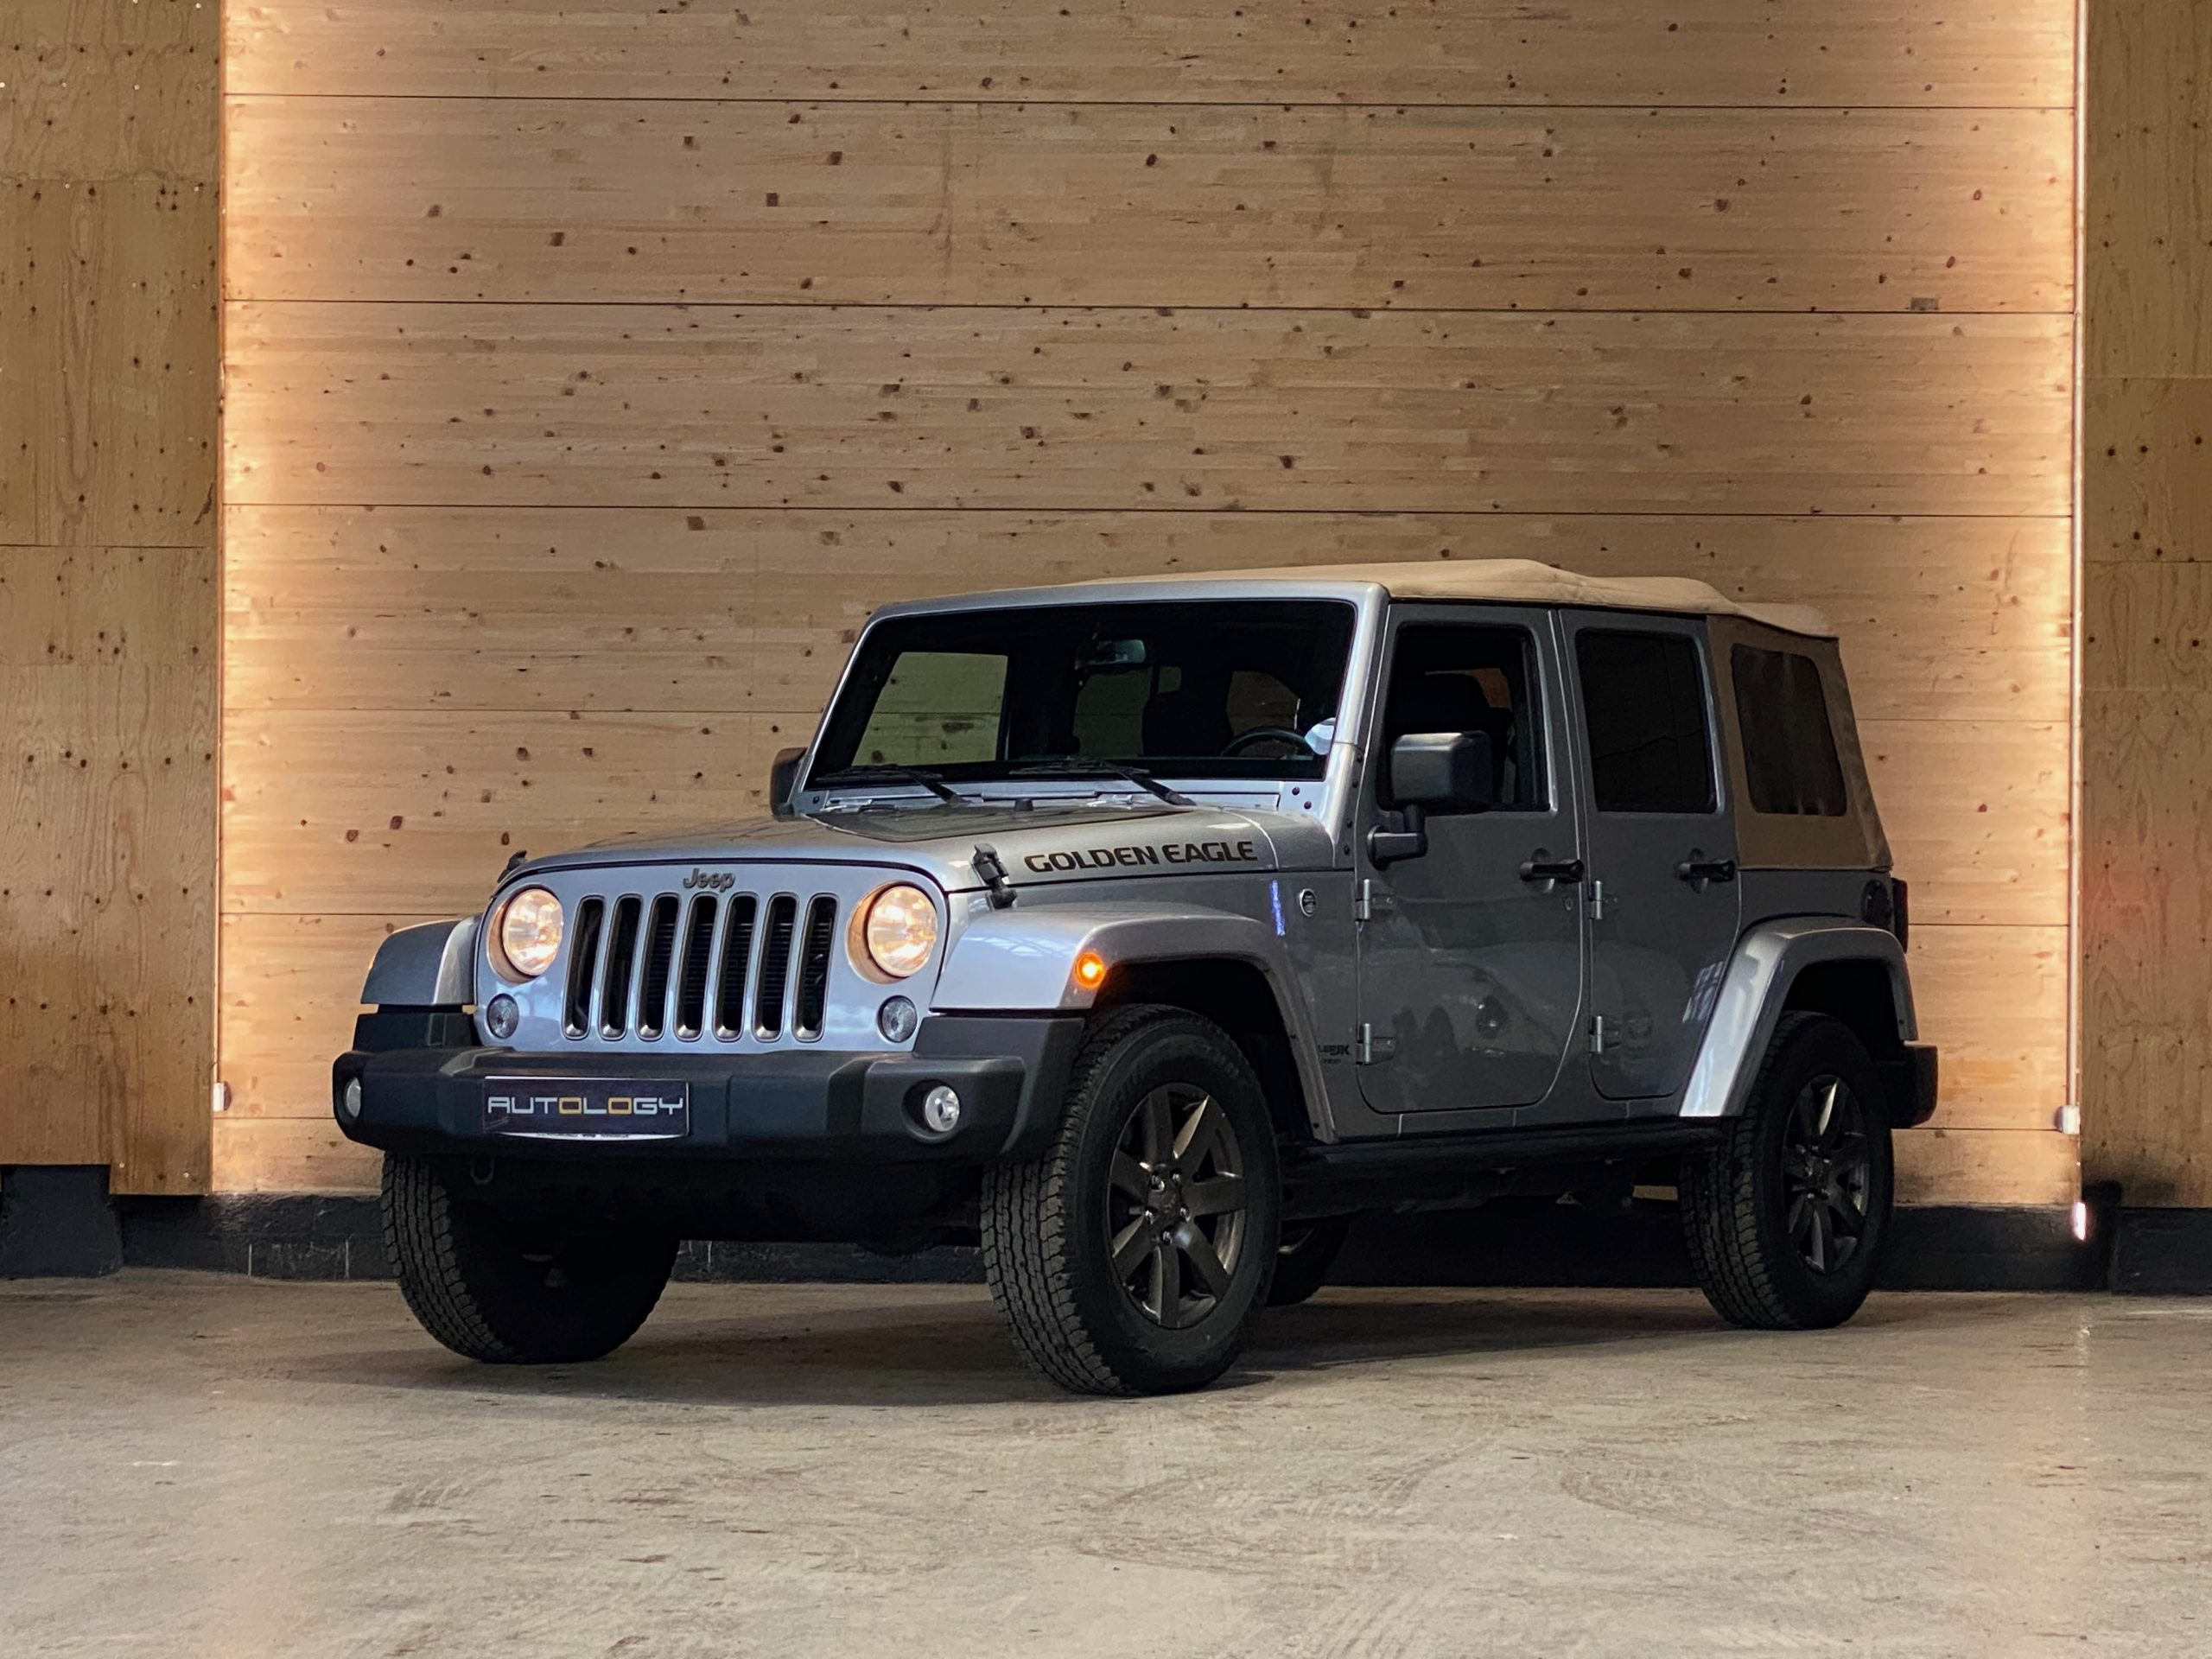 Jeep Wrangler JK Unlimited V6 3.6 Golden Eagle